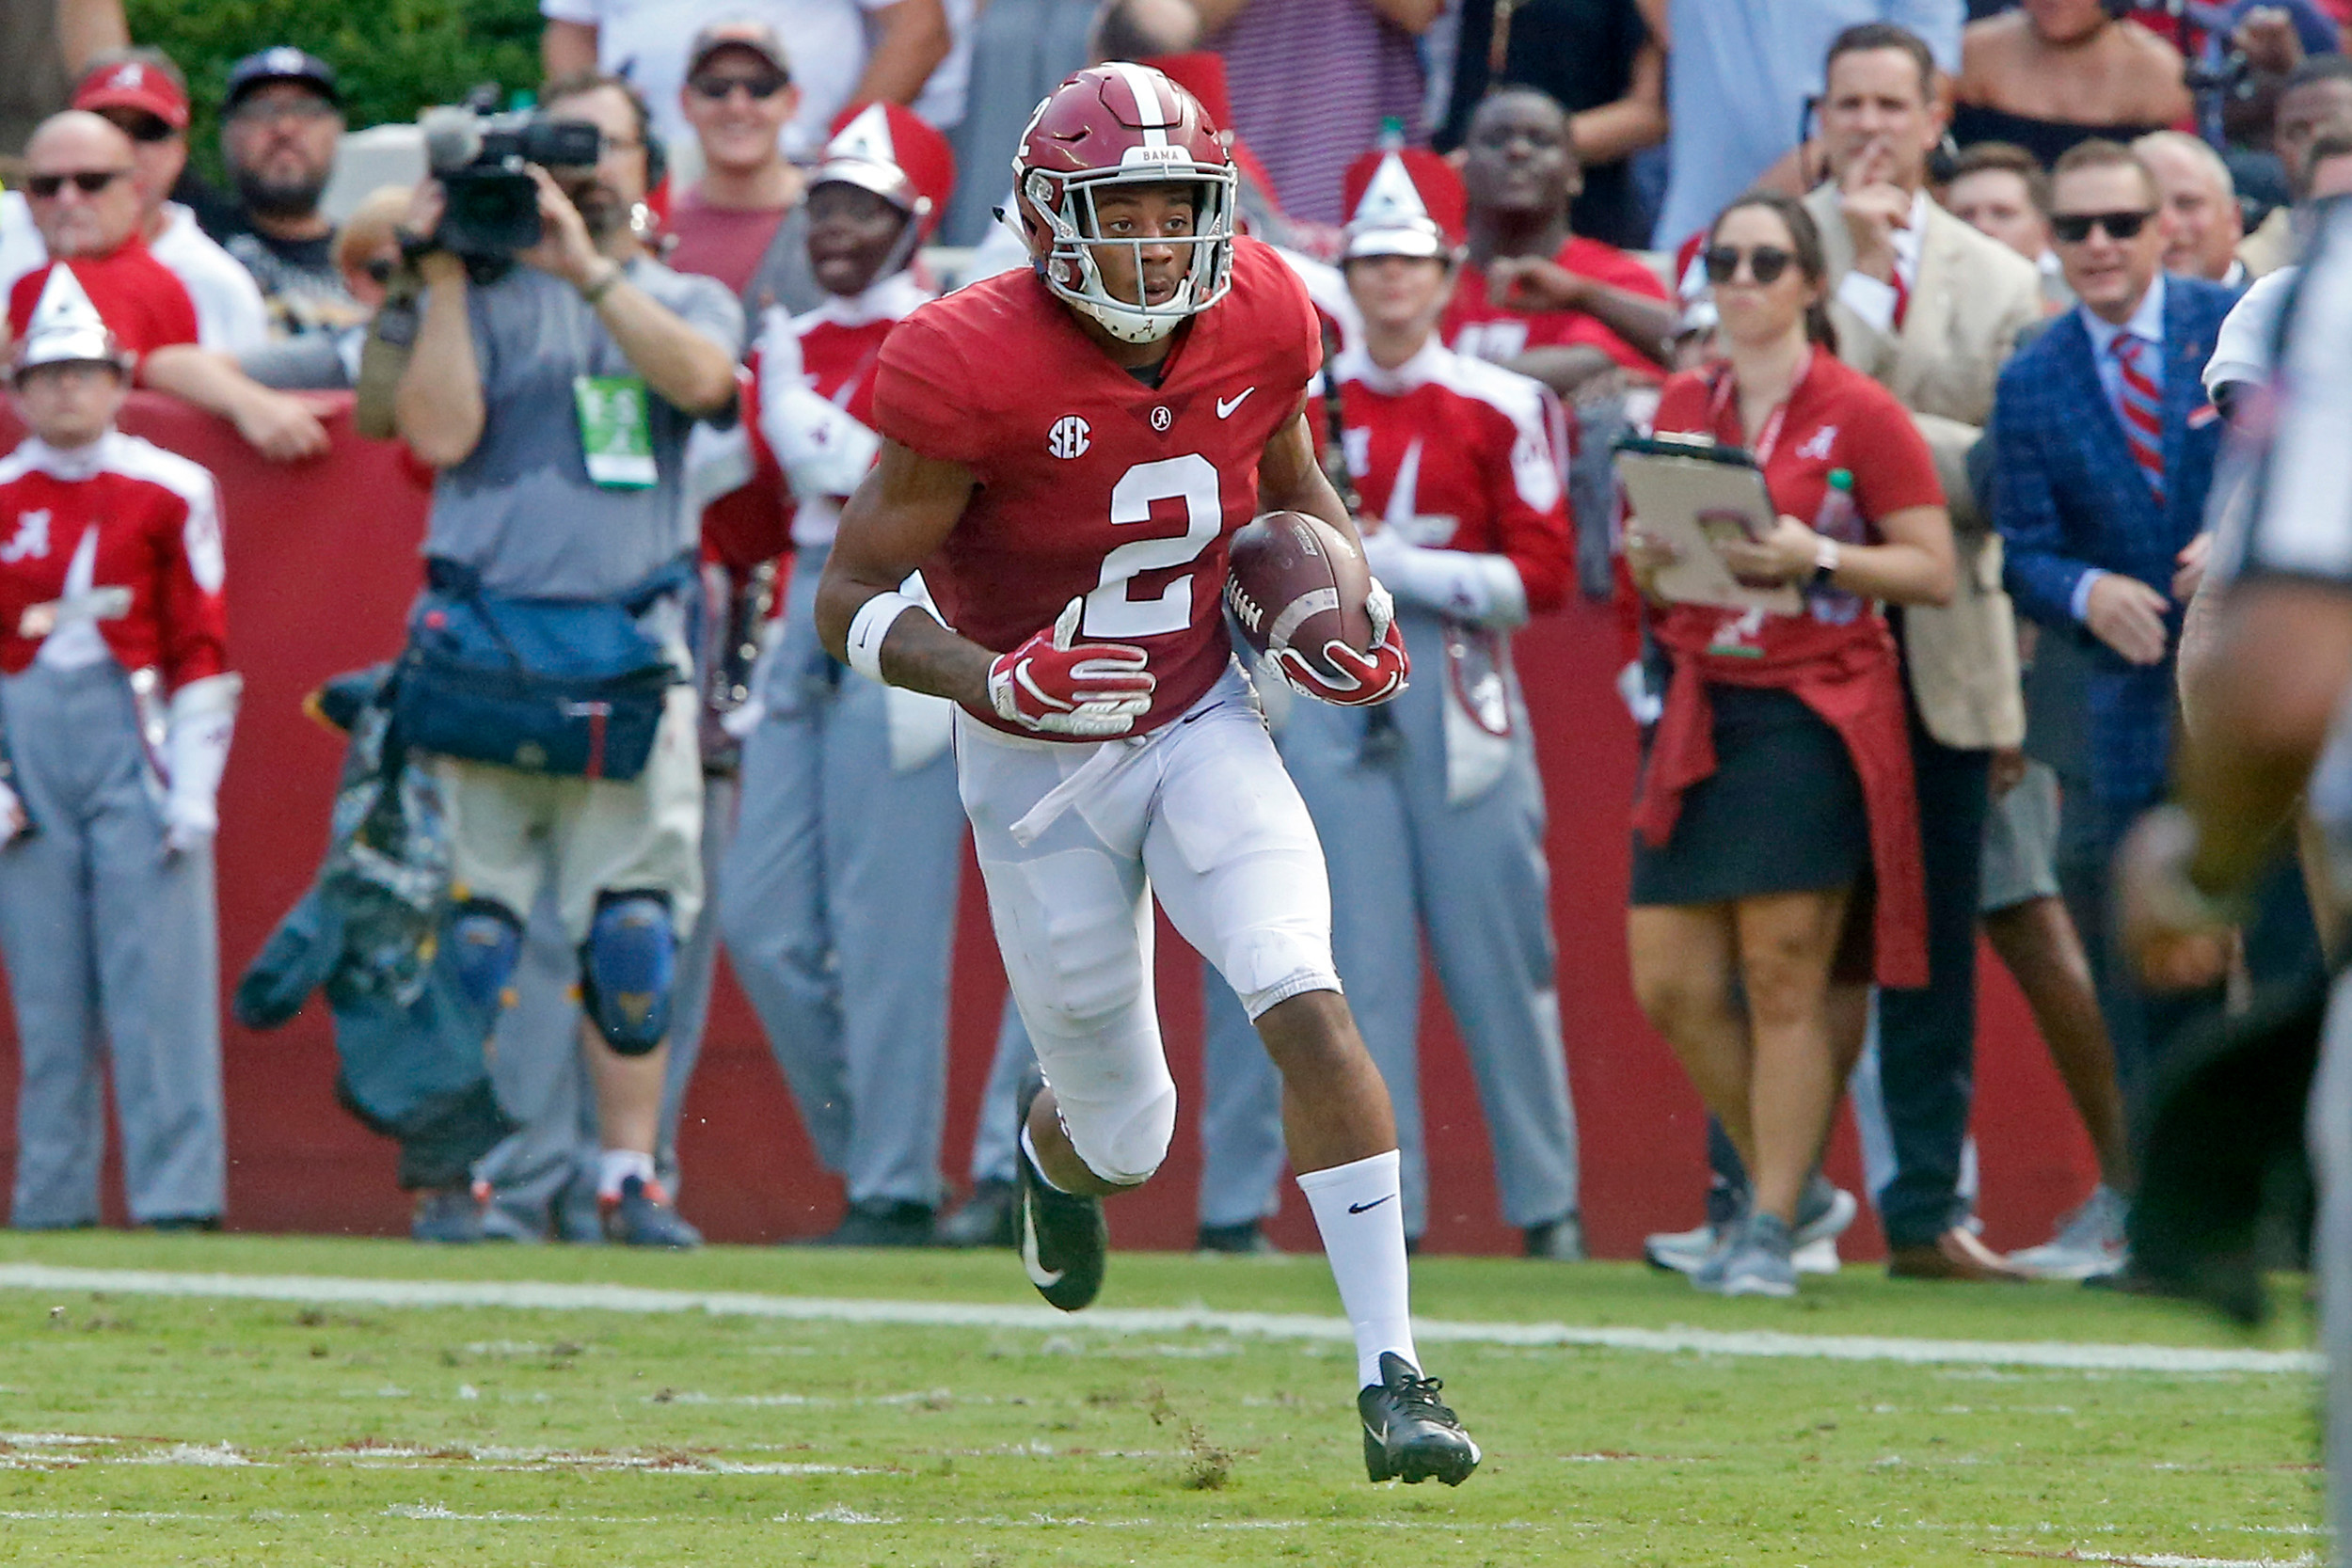 Alabama Crimson Tide defensive back Patrick Surtain II (2) returns an interception during the game between the Texas A&M Aggies and the University of Alabama Crimson Tide at Bryant-Denny Stadium.  Jason Clark / Daily Mountain Eagle